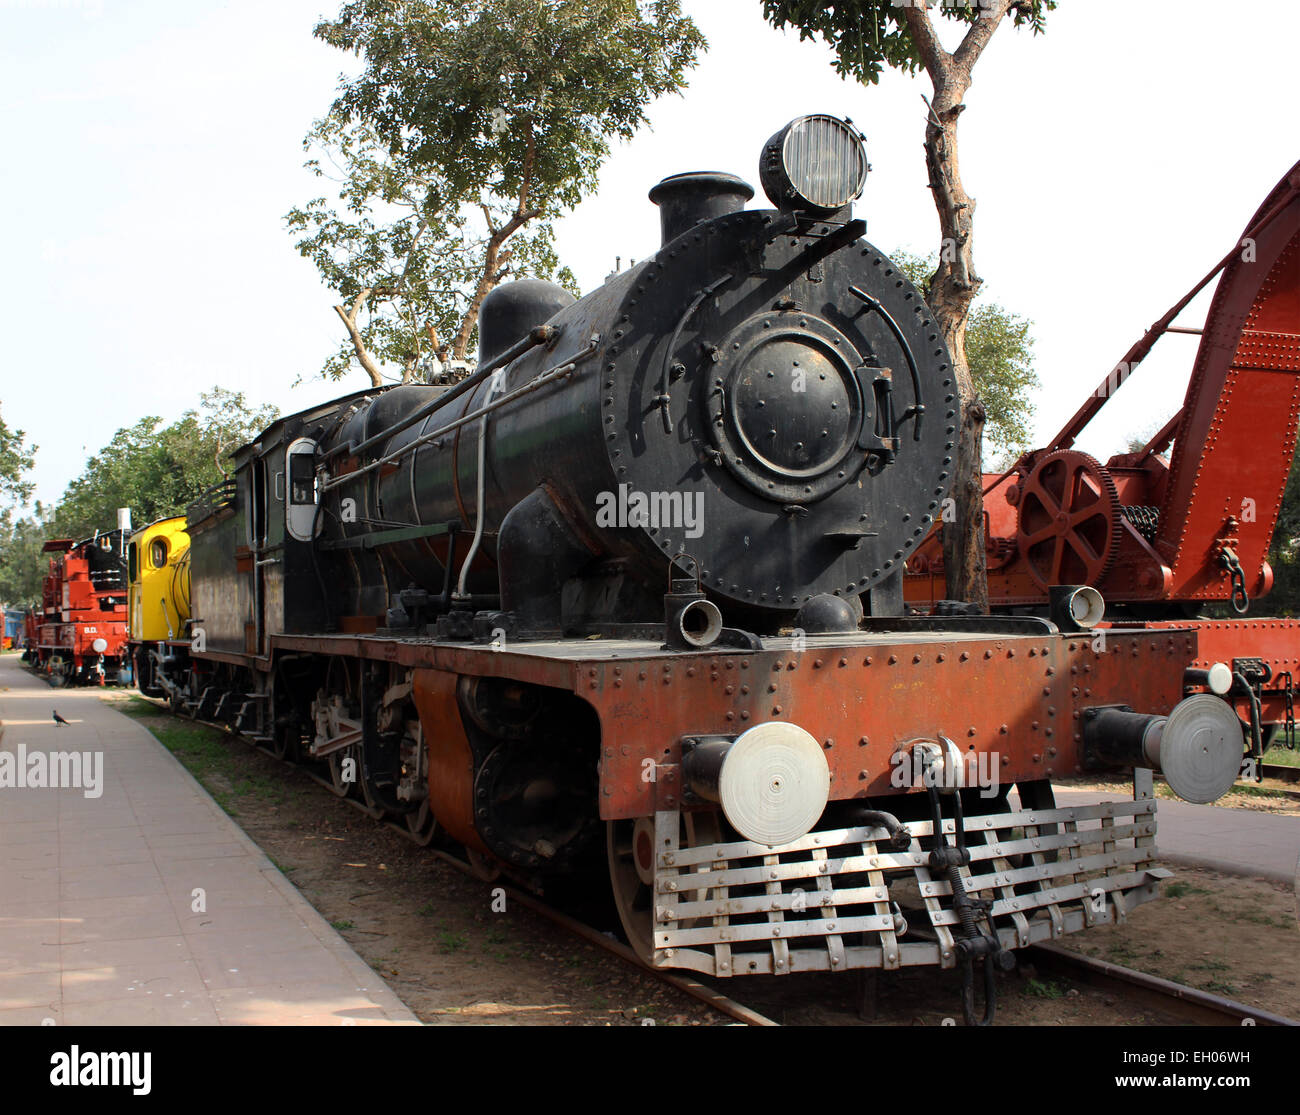 Train, Indian, India, old, vintage, iron, depot, engine, excursion